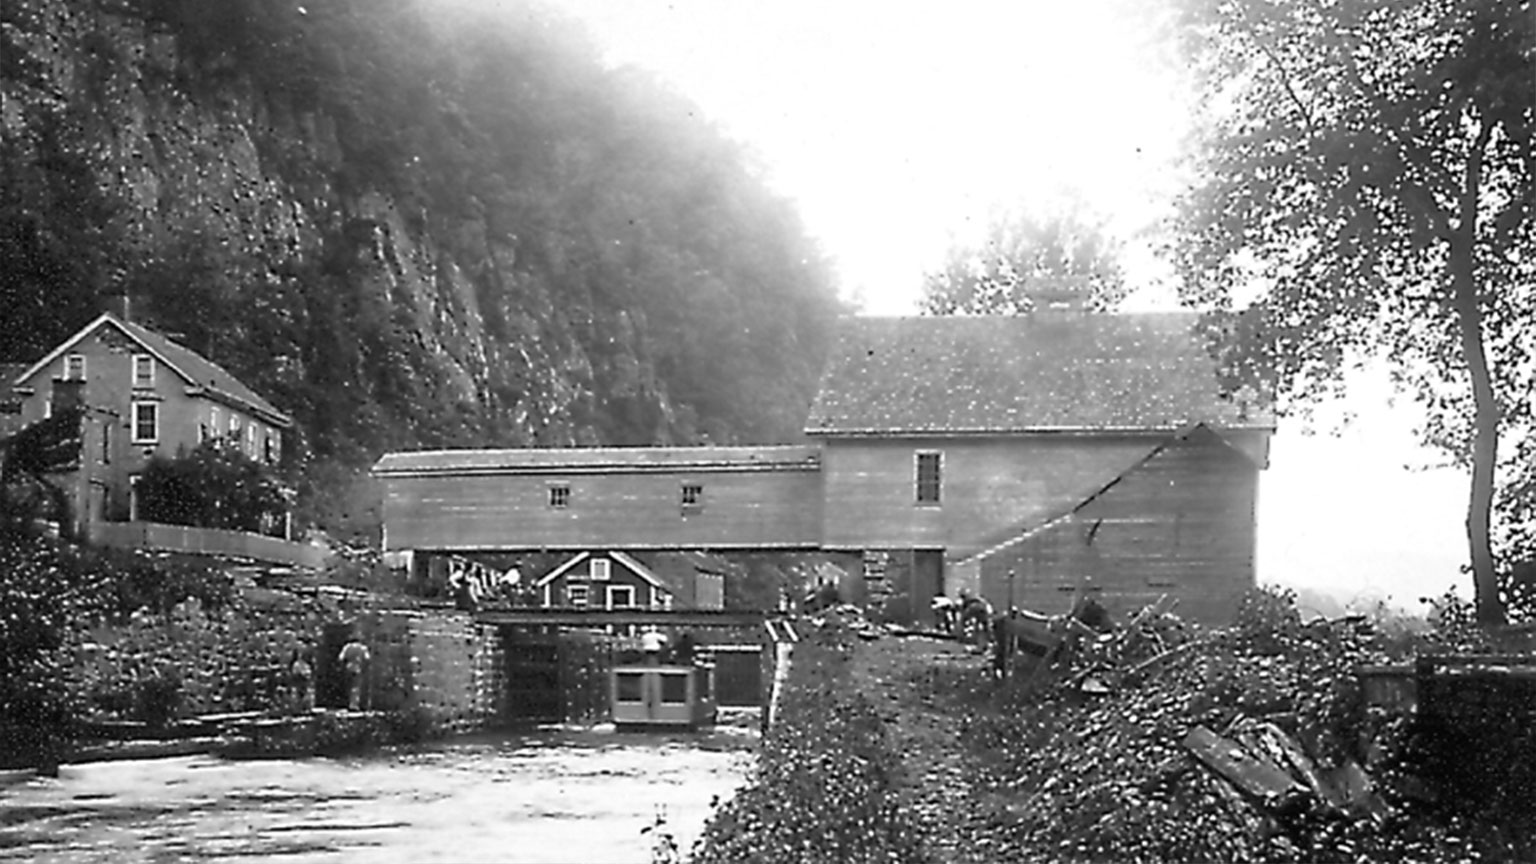 This photo is a great example of an active mill and how it incorporates the canal into its structure.